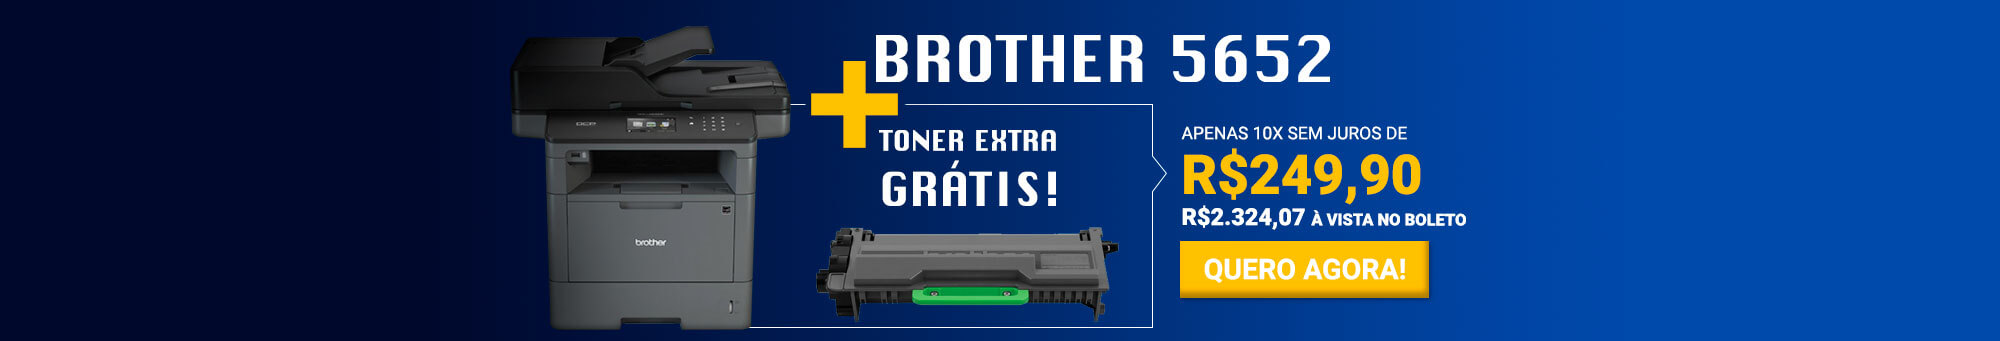 Brother 5652 + toner 3472